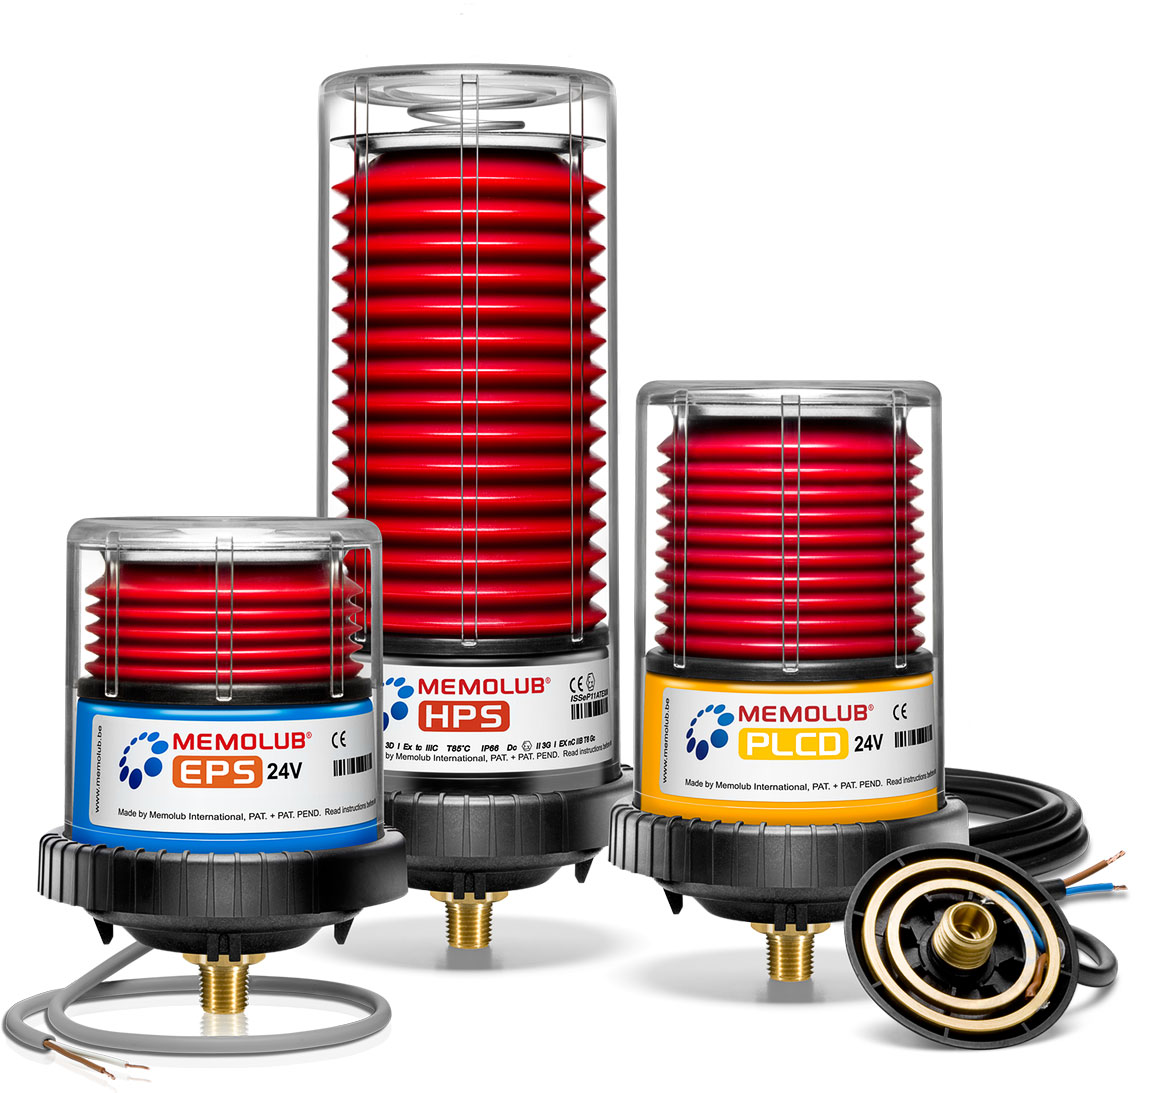 Memolub Single-Point Lubricators